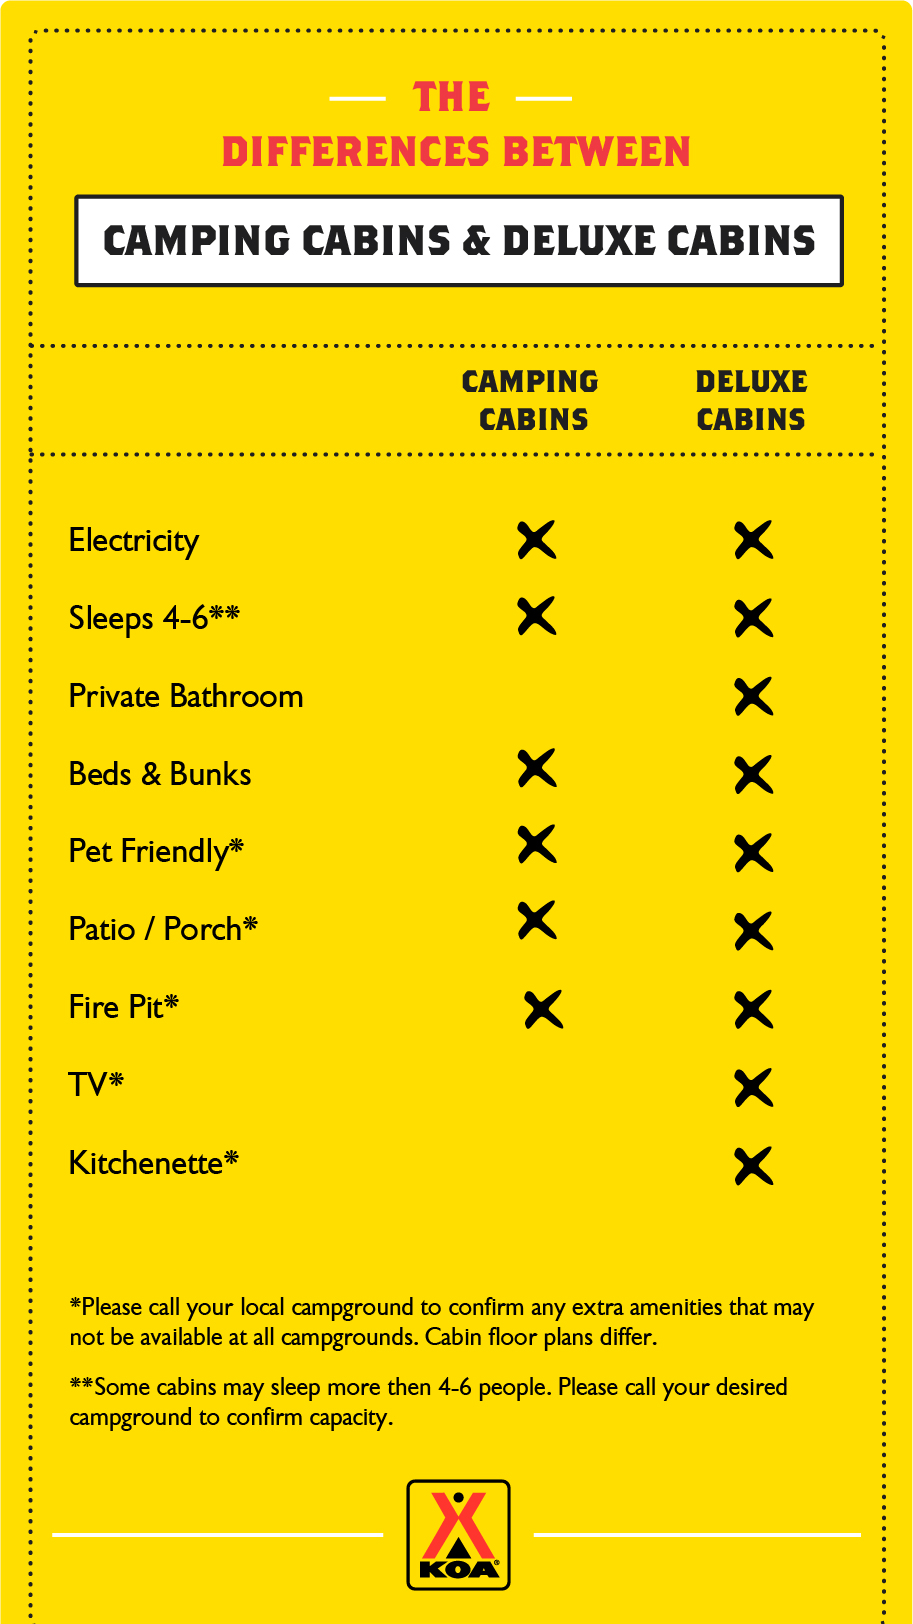 Differences Between Camping Cabins & Deluxe Cabins